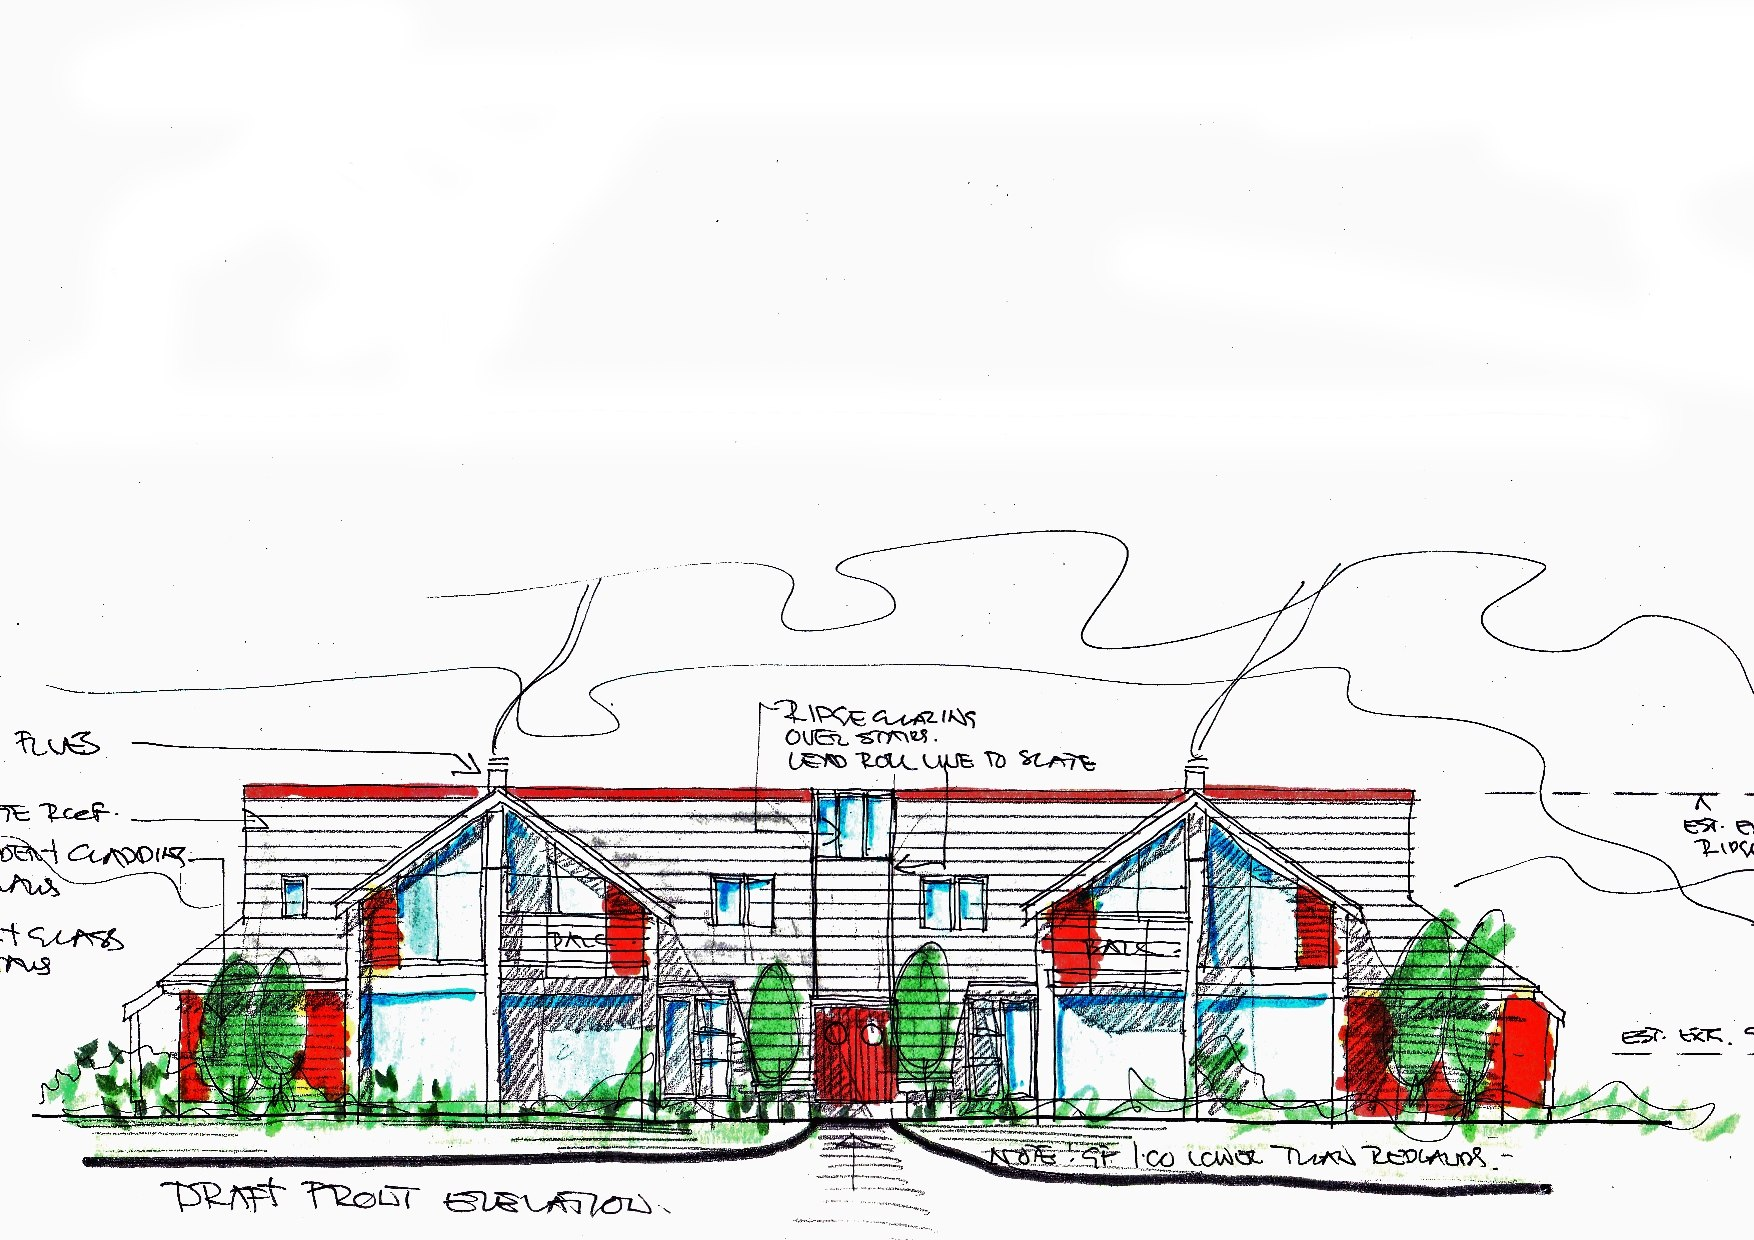 Design concept for Bigbury Housing